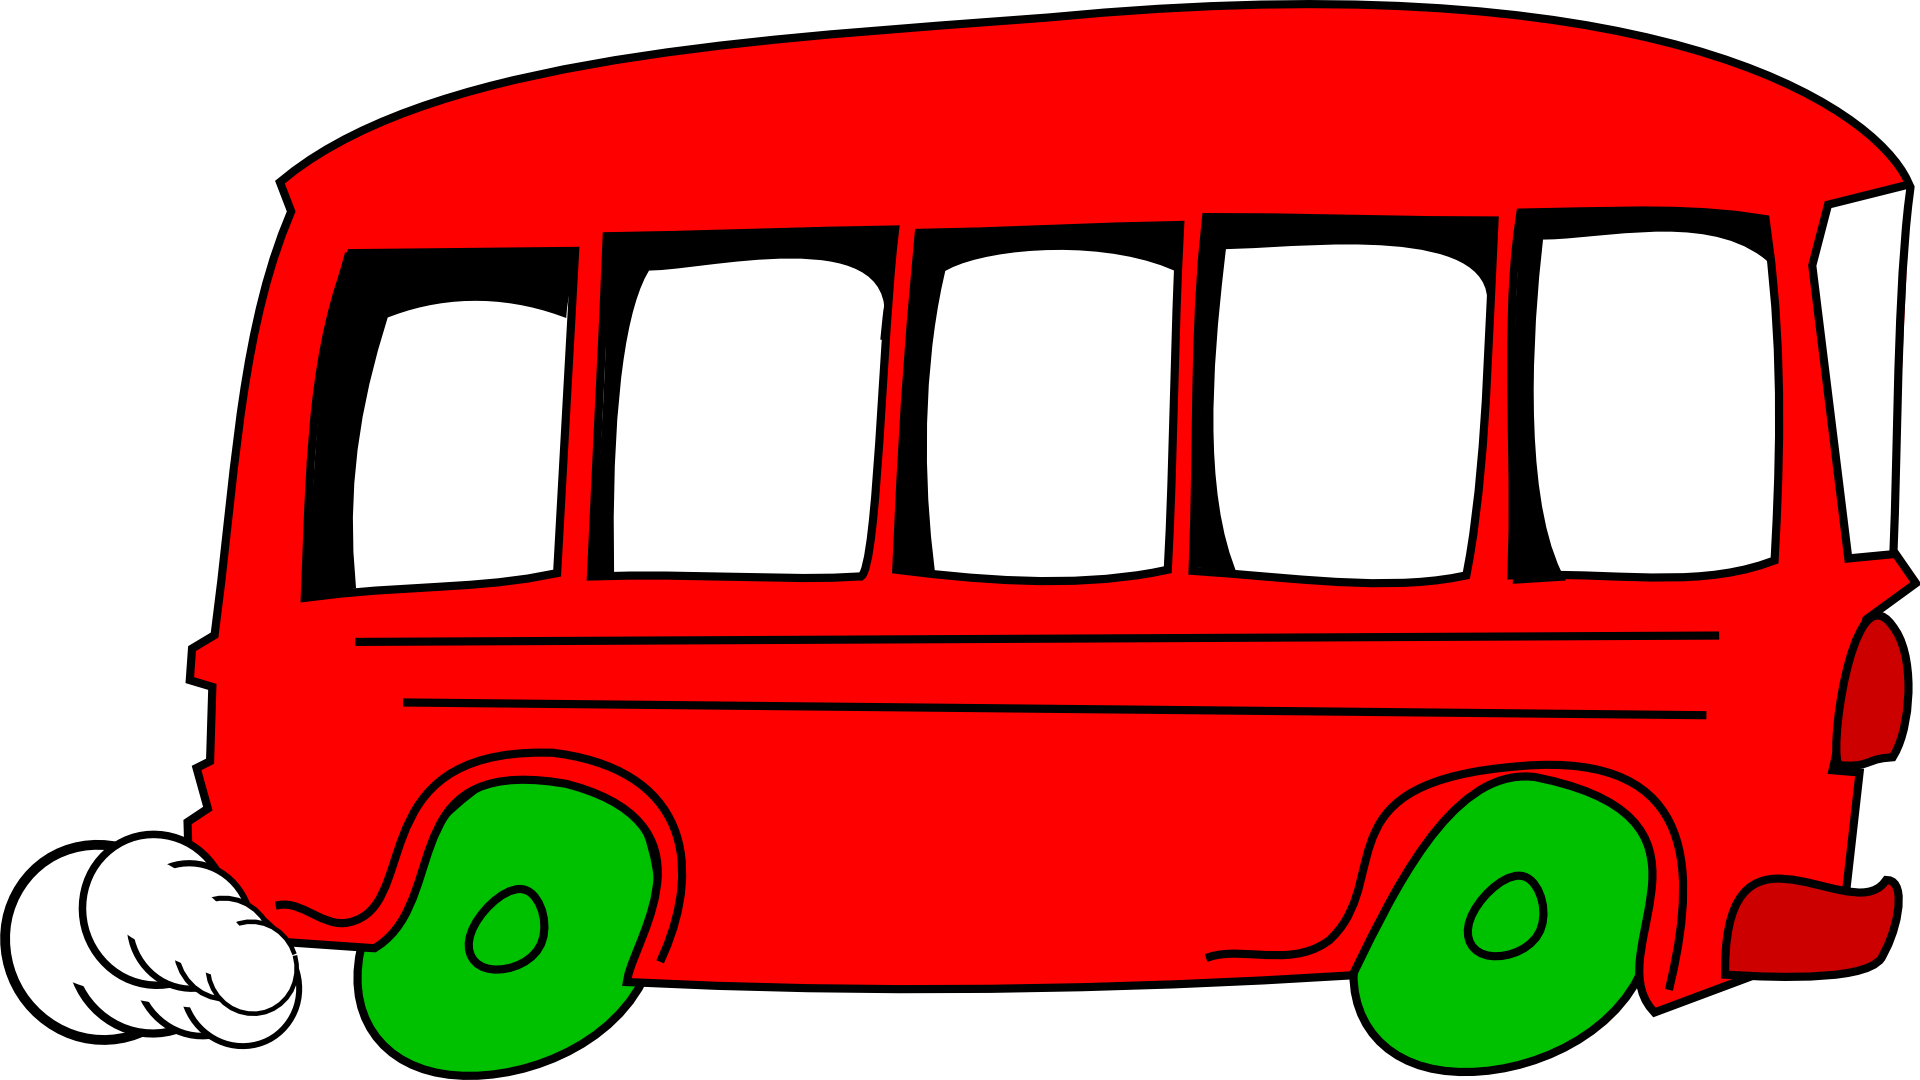 Red school bus clipart free image.